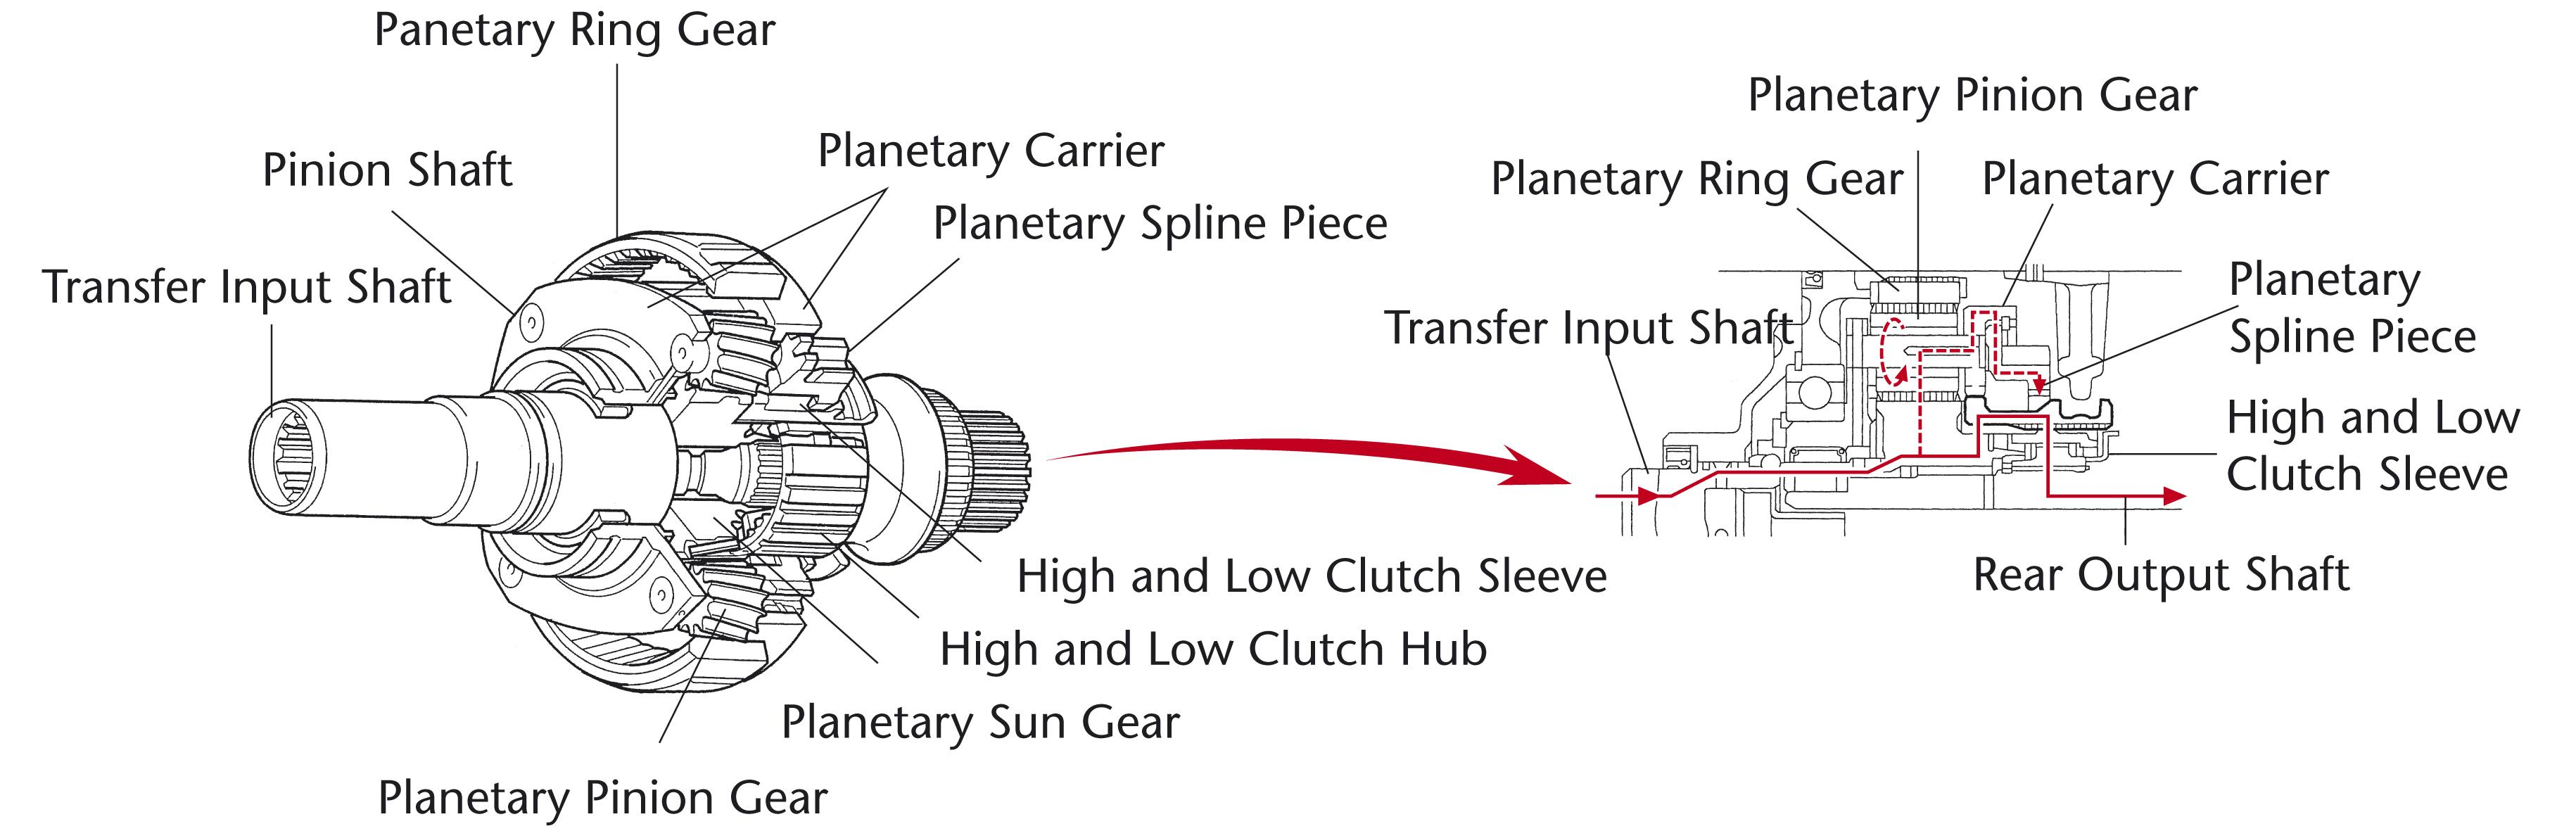 2007 Toyota Hilux Top Speed Engine Displacement Diagram